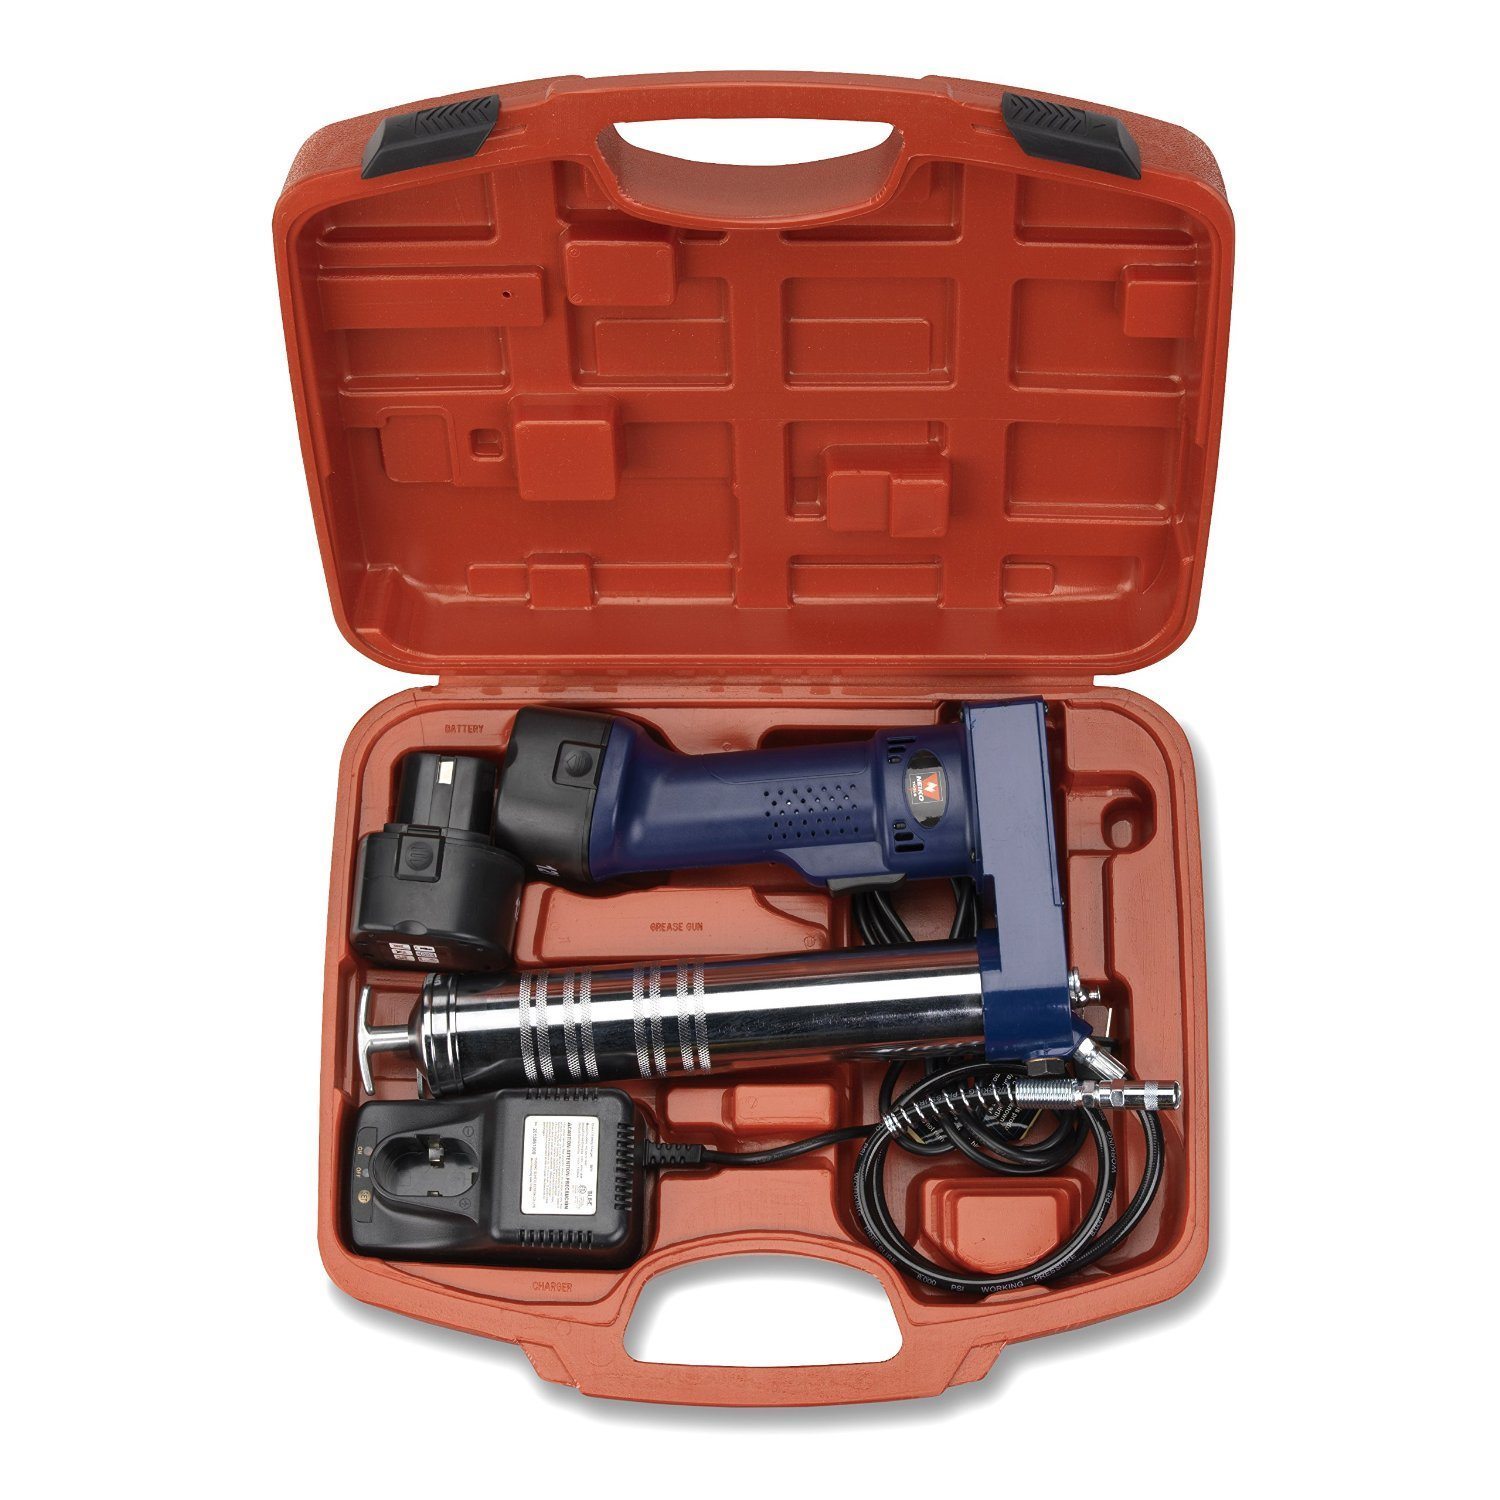 Neiko 12000A 12V 6500 PSI Cordless Grease Gun| Batteries Included